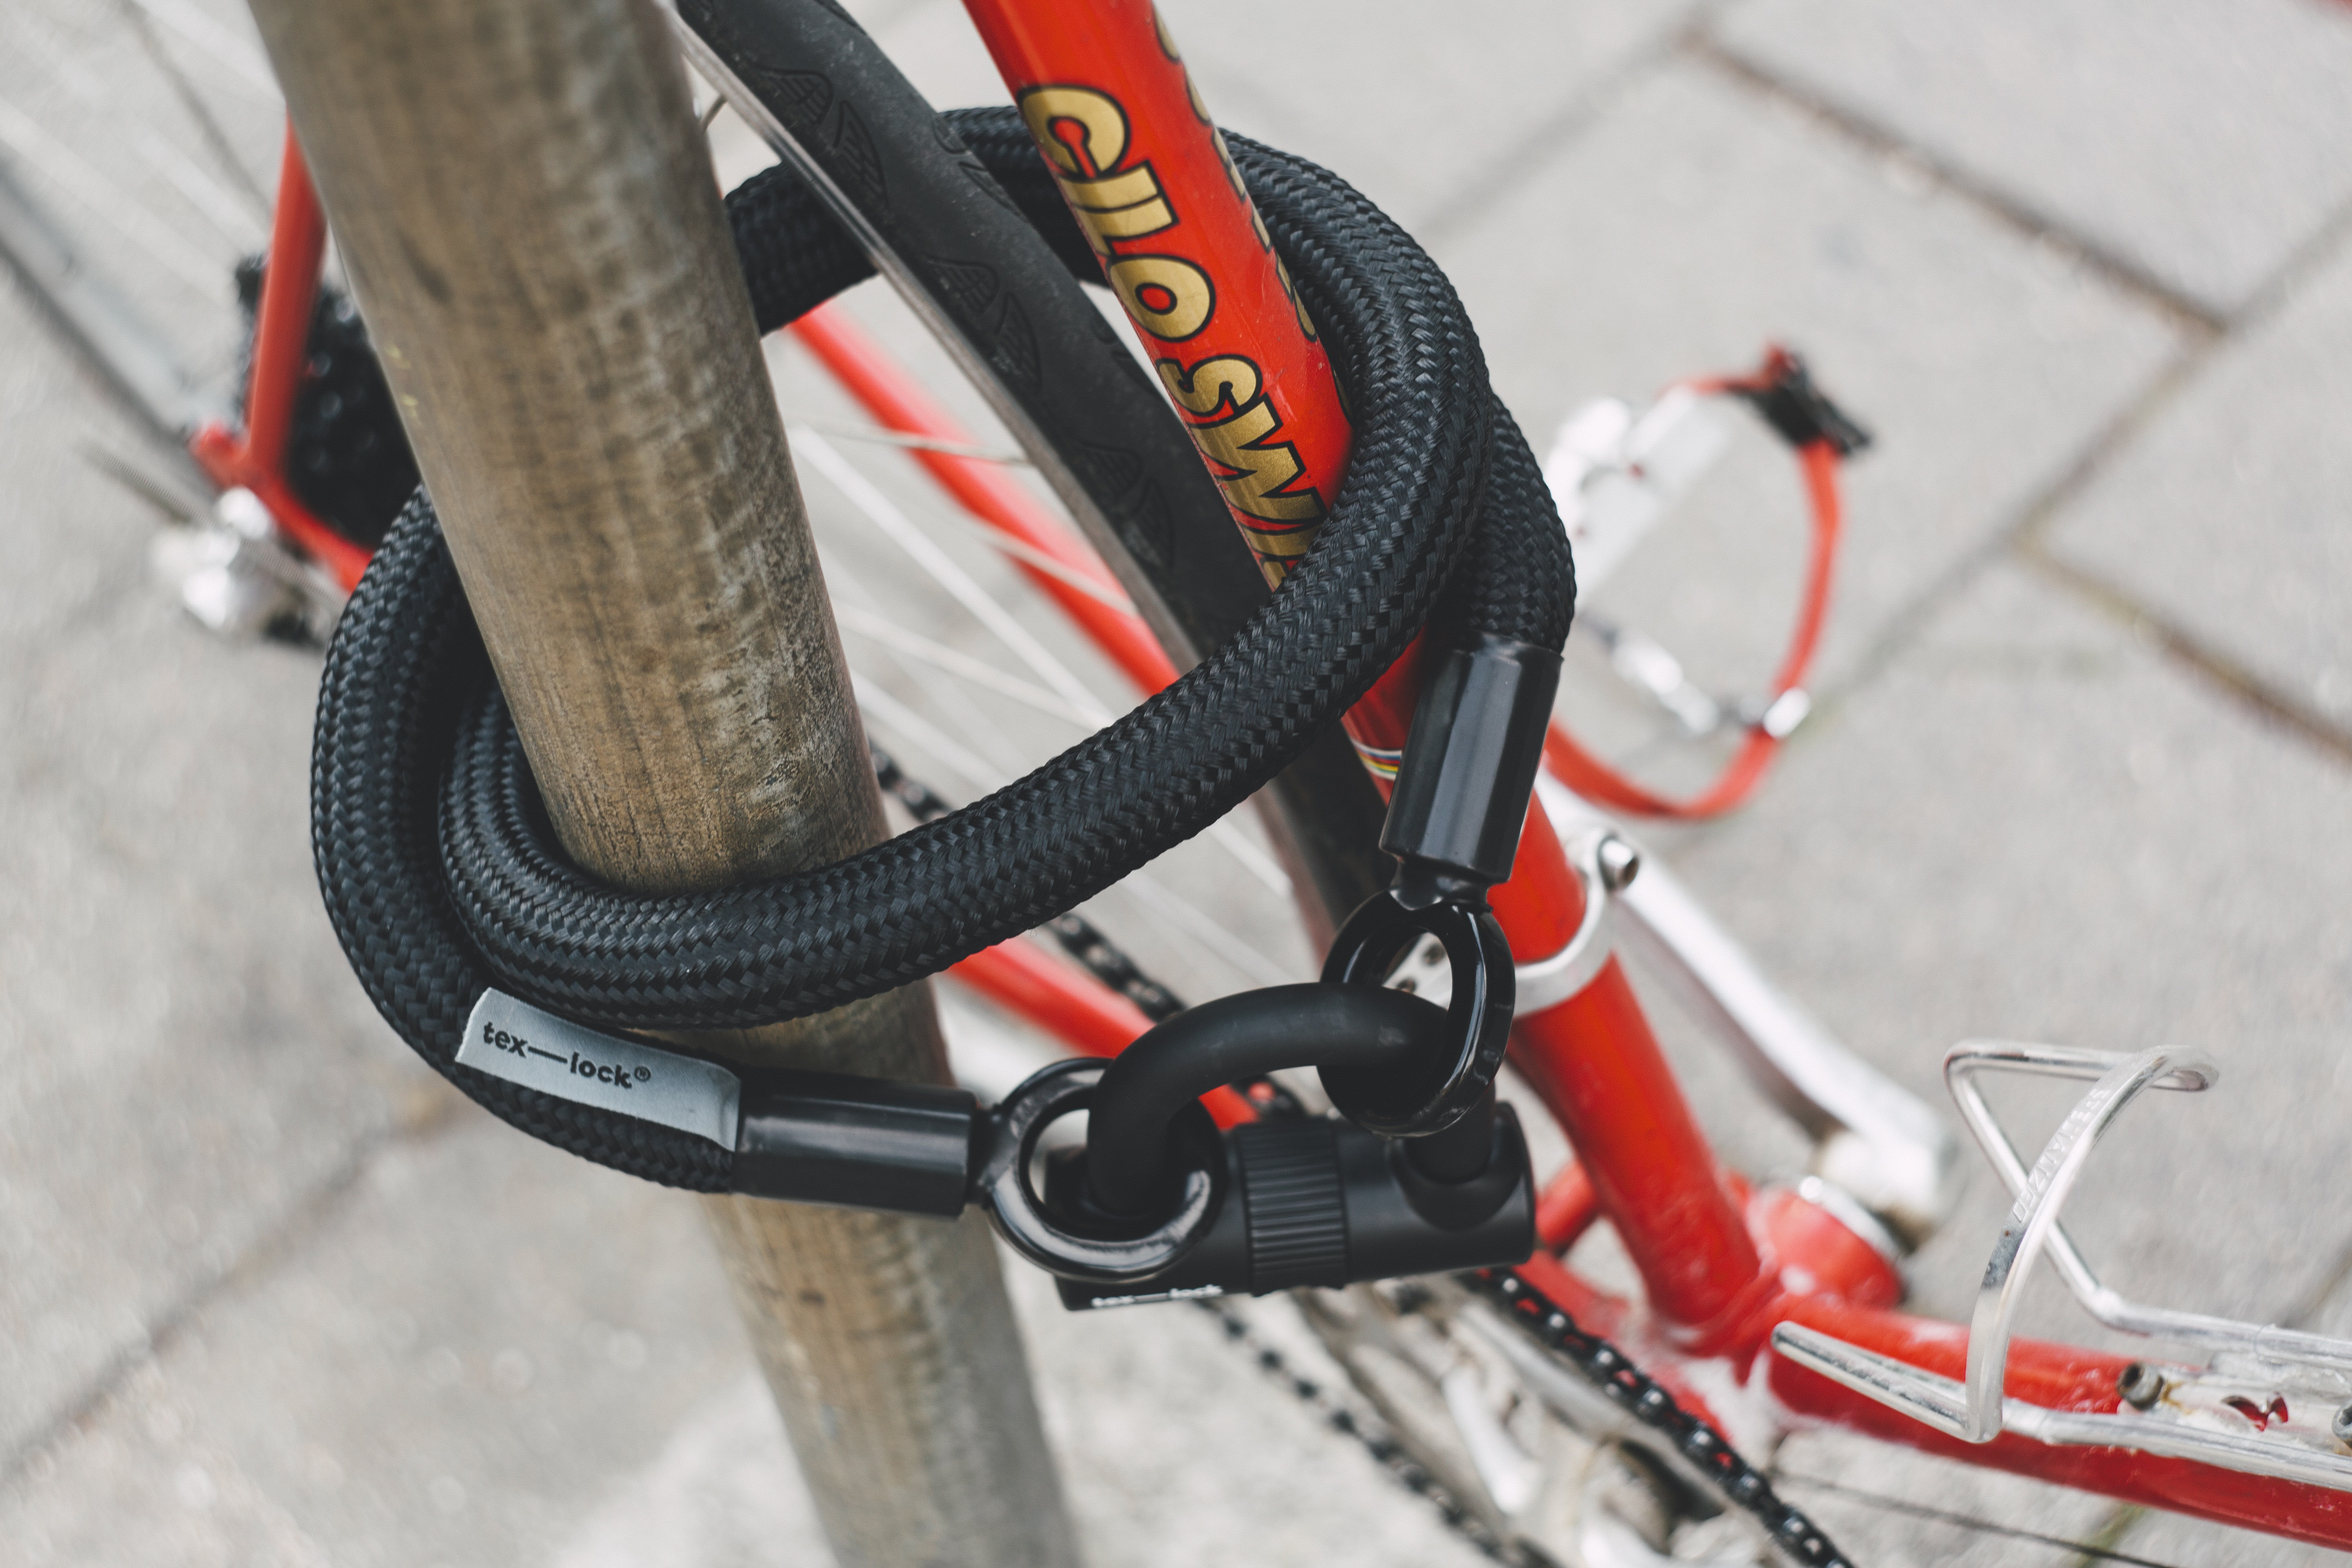 red and white bicycle locked in gray pole